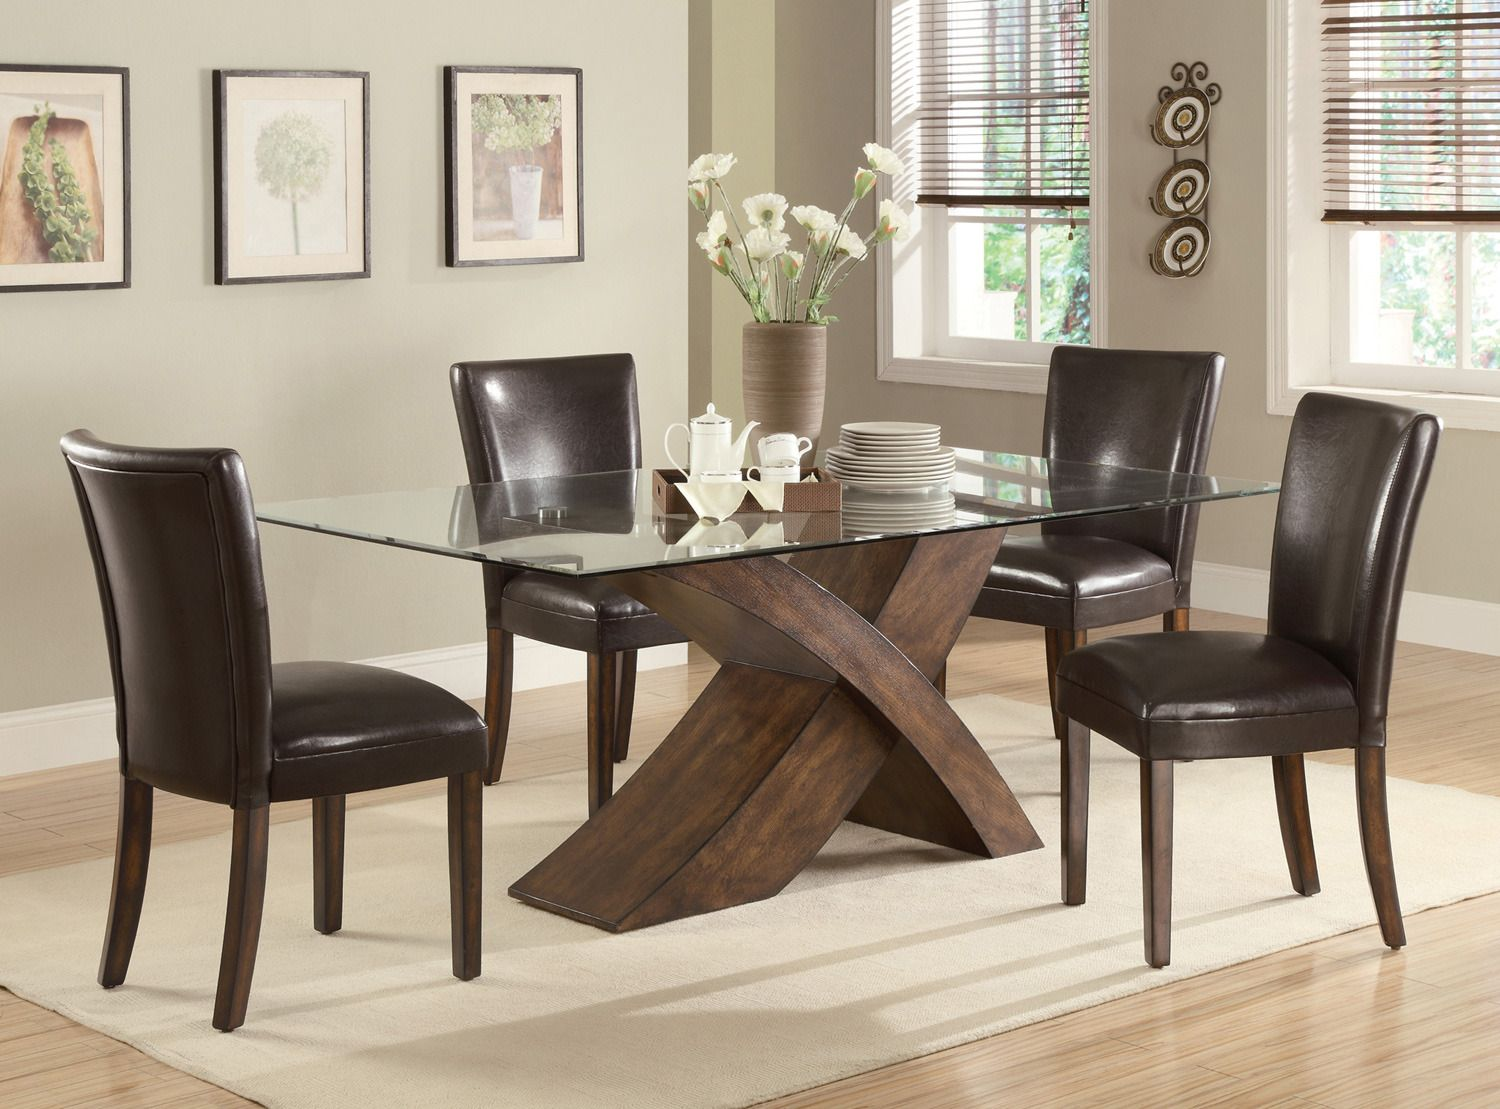 Nessa Dining Room Setcoaster  Home Gallery Stores  Dining Alluring Coaster Dining Room Furniture Design Ideas